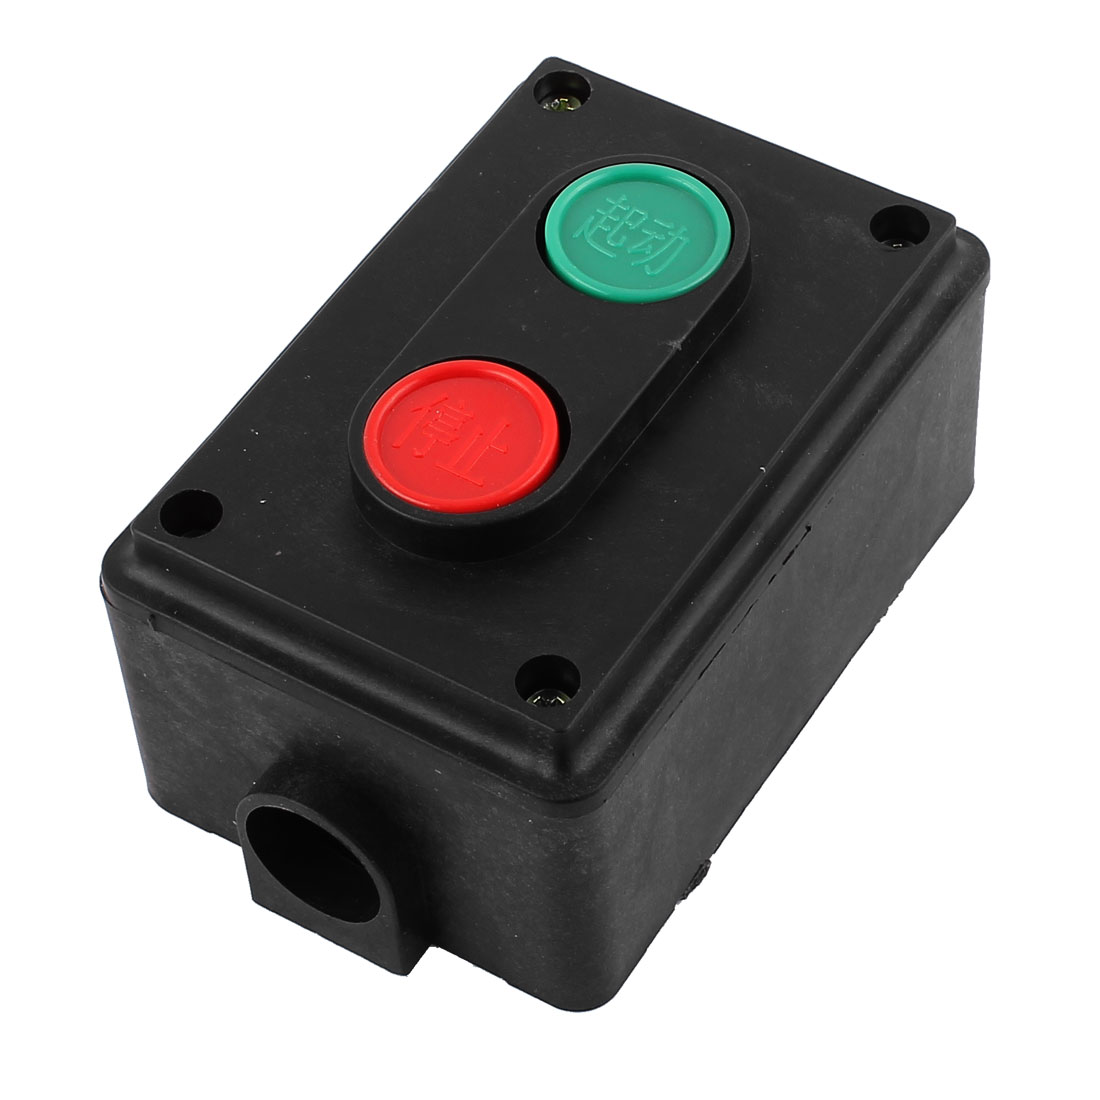 AC 500V 5A ON/OFF Momentary Red Green 2 Push Button Switch Station